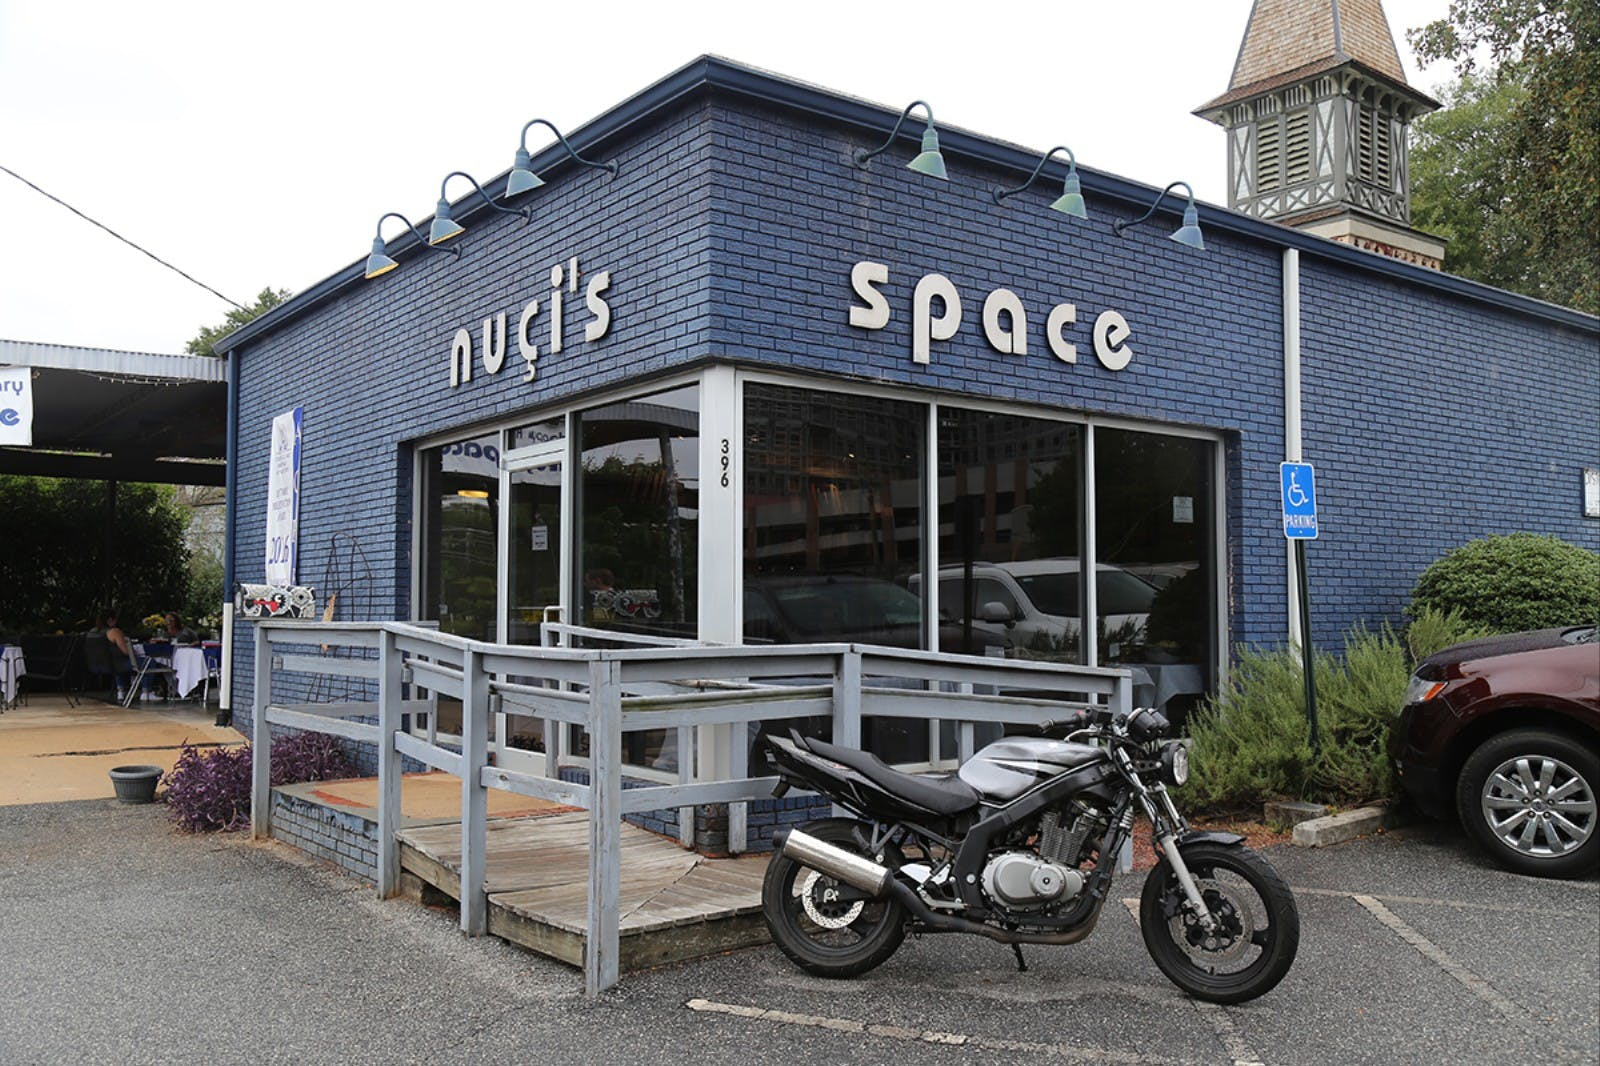 Nuçi's Space building, a place for musicians and mental health.